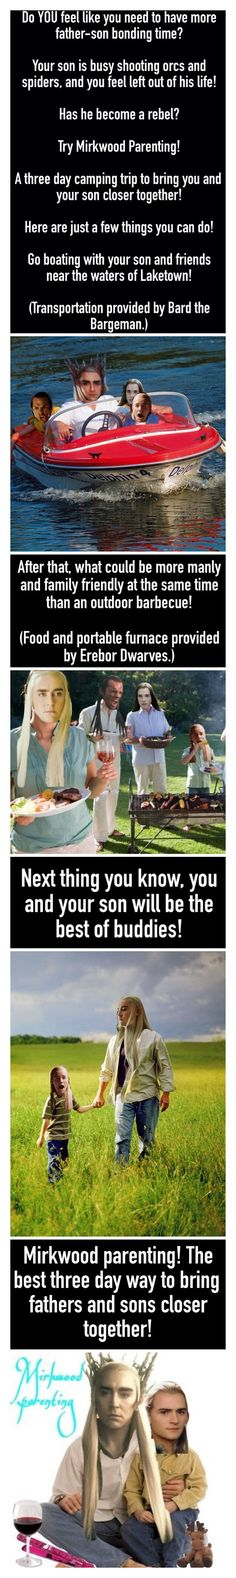 NOTE: PICTURES DO NOT BELONG TO ME! I wish I could give credit, but I honestly just found them around on the internet. The words however were done by me! ~ @TrollinLegolas | The Hobbit | Lord of the Rings | Humor | Legolas | Thranduil | Elrond | Lindir / Figwit